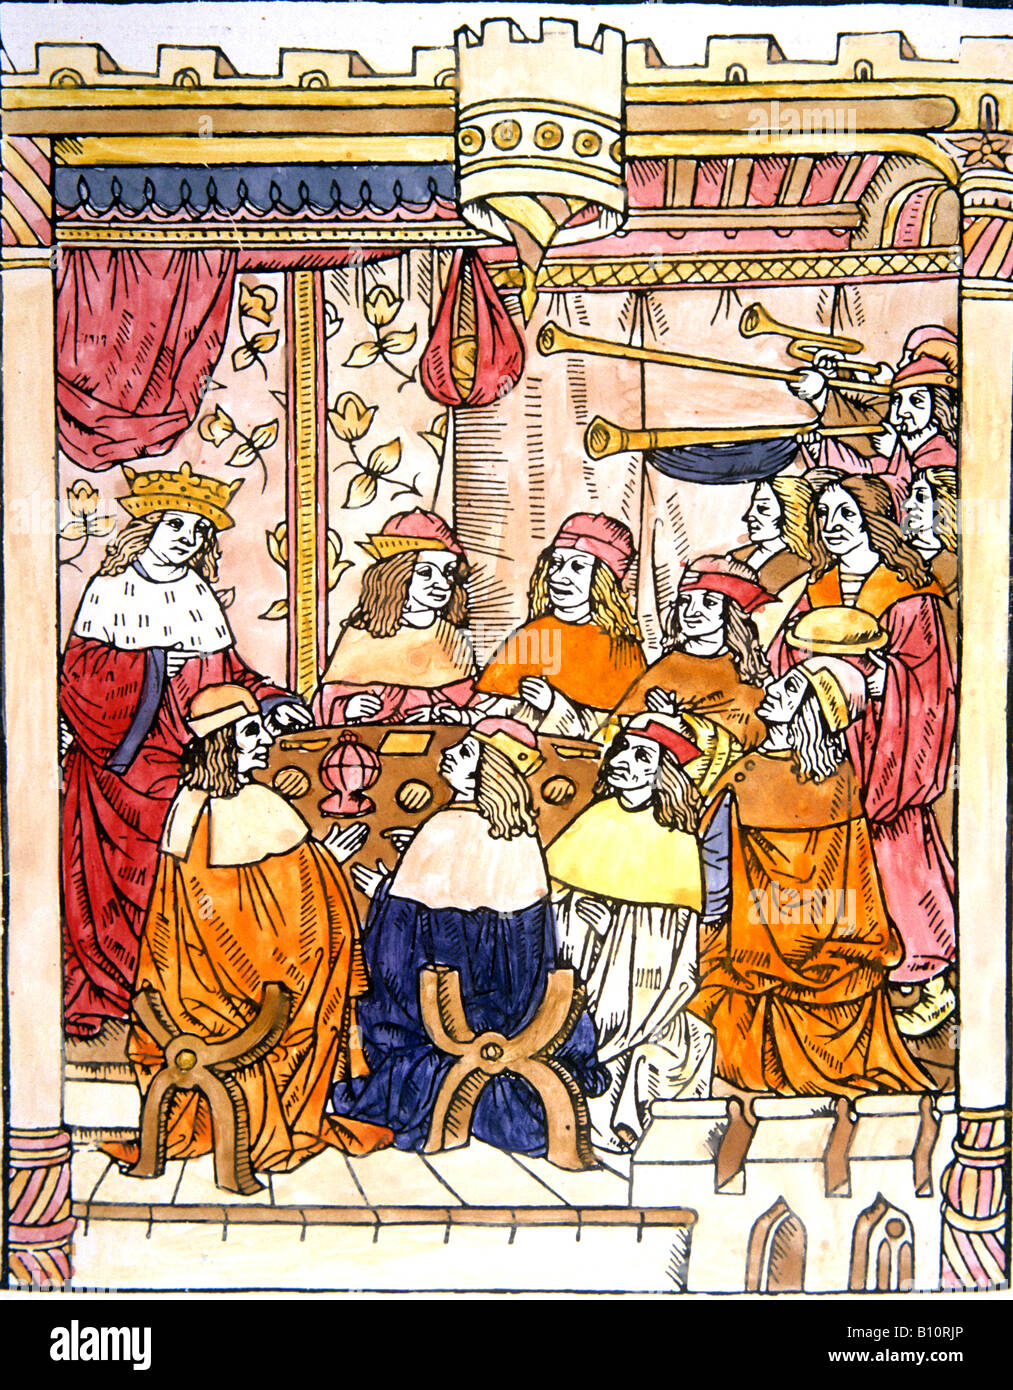 King Arthur and the Round Table from Miroir Historiare 1495 Drawing ©The Ancient Art & Architecture Collection - Stock Image